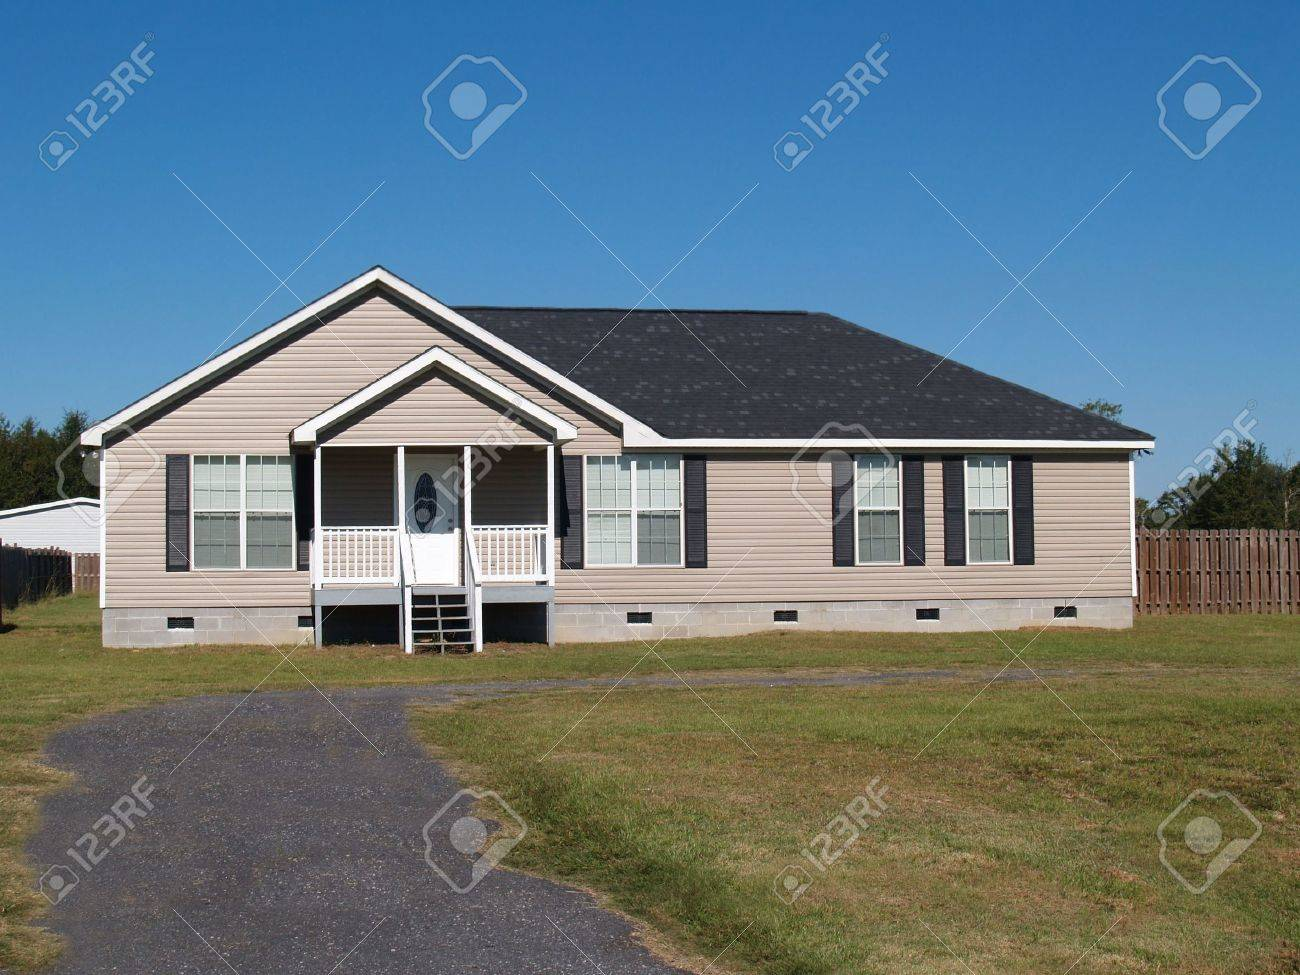 Small low income manufactured home with a covered porch and vinyl siding. - 5681020